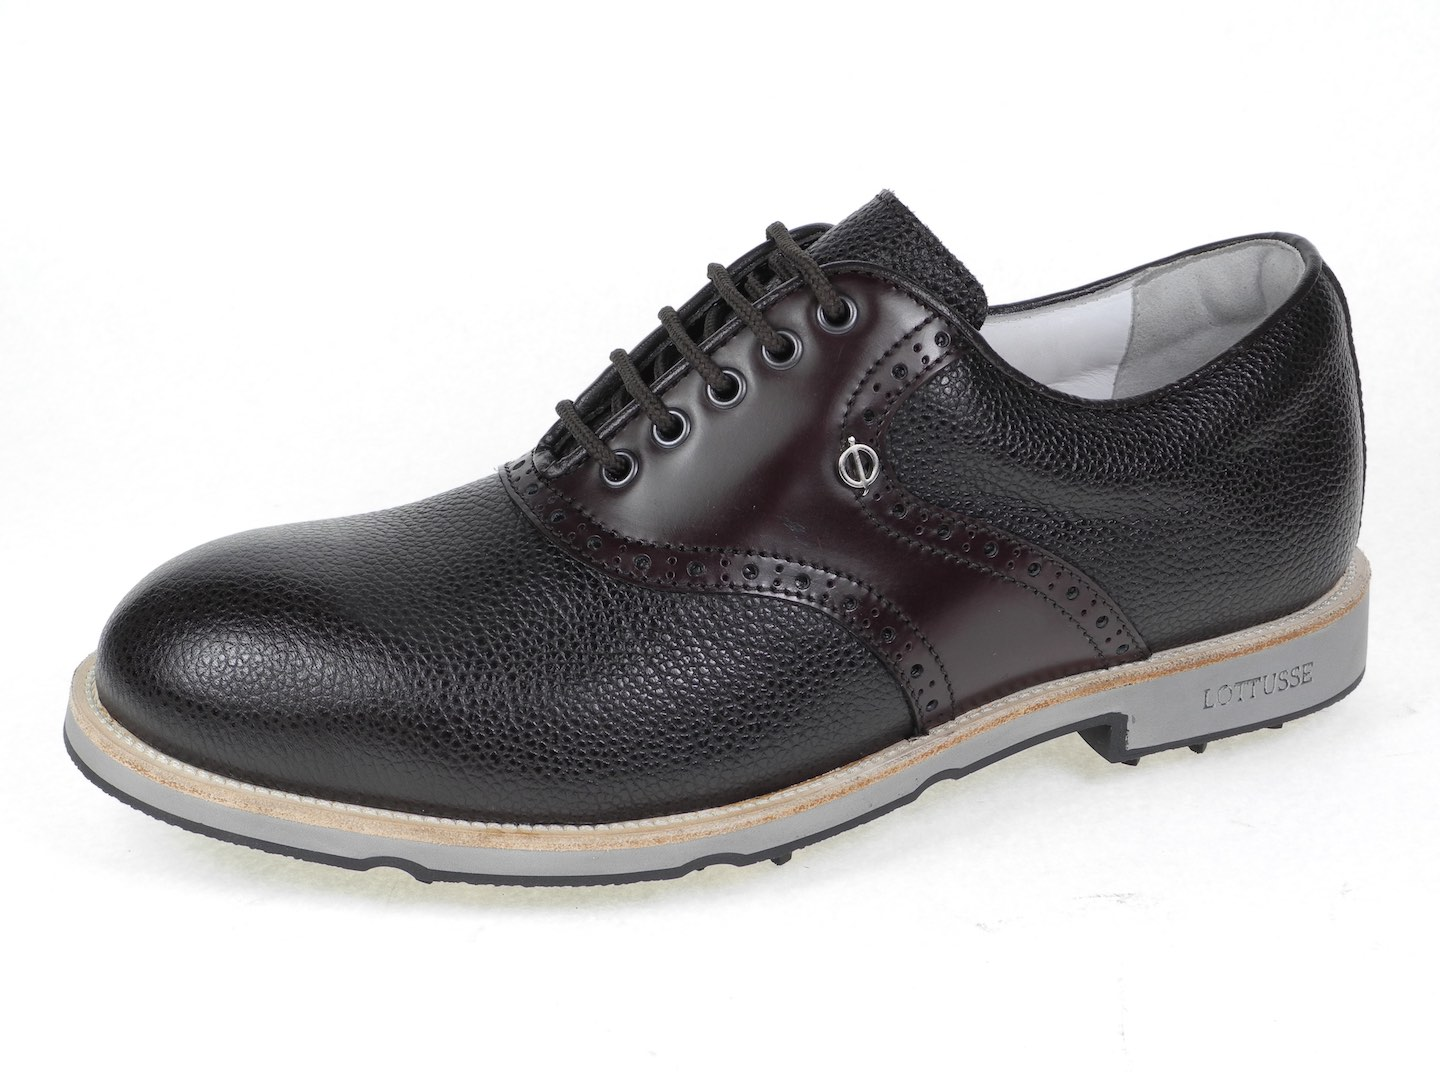 Oscar Jacobson launch new shoes